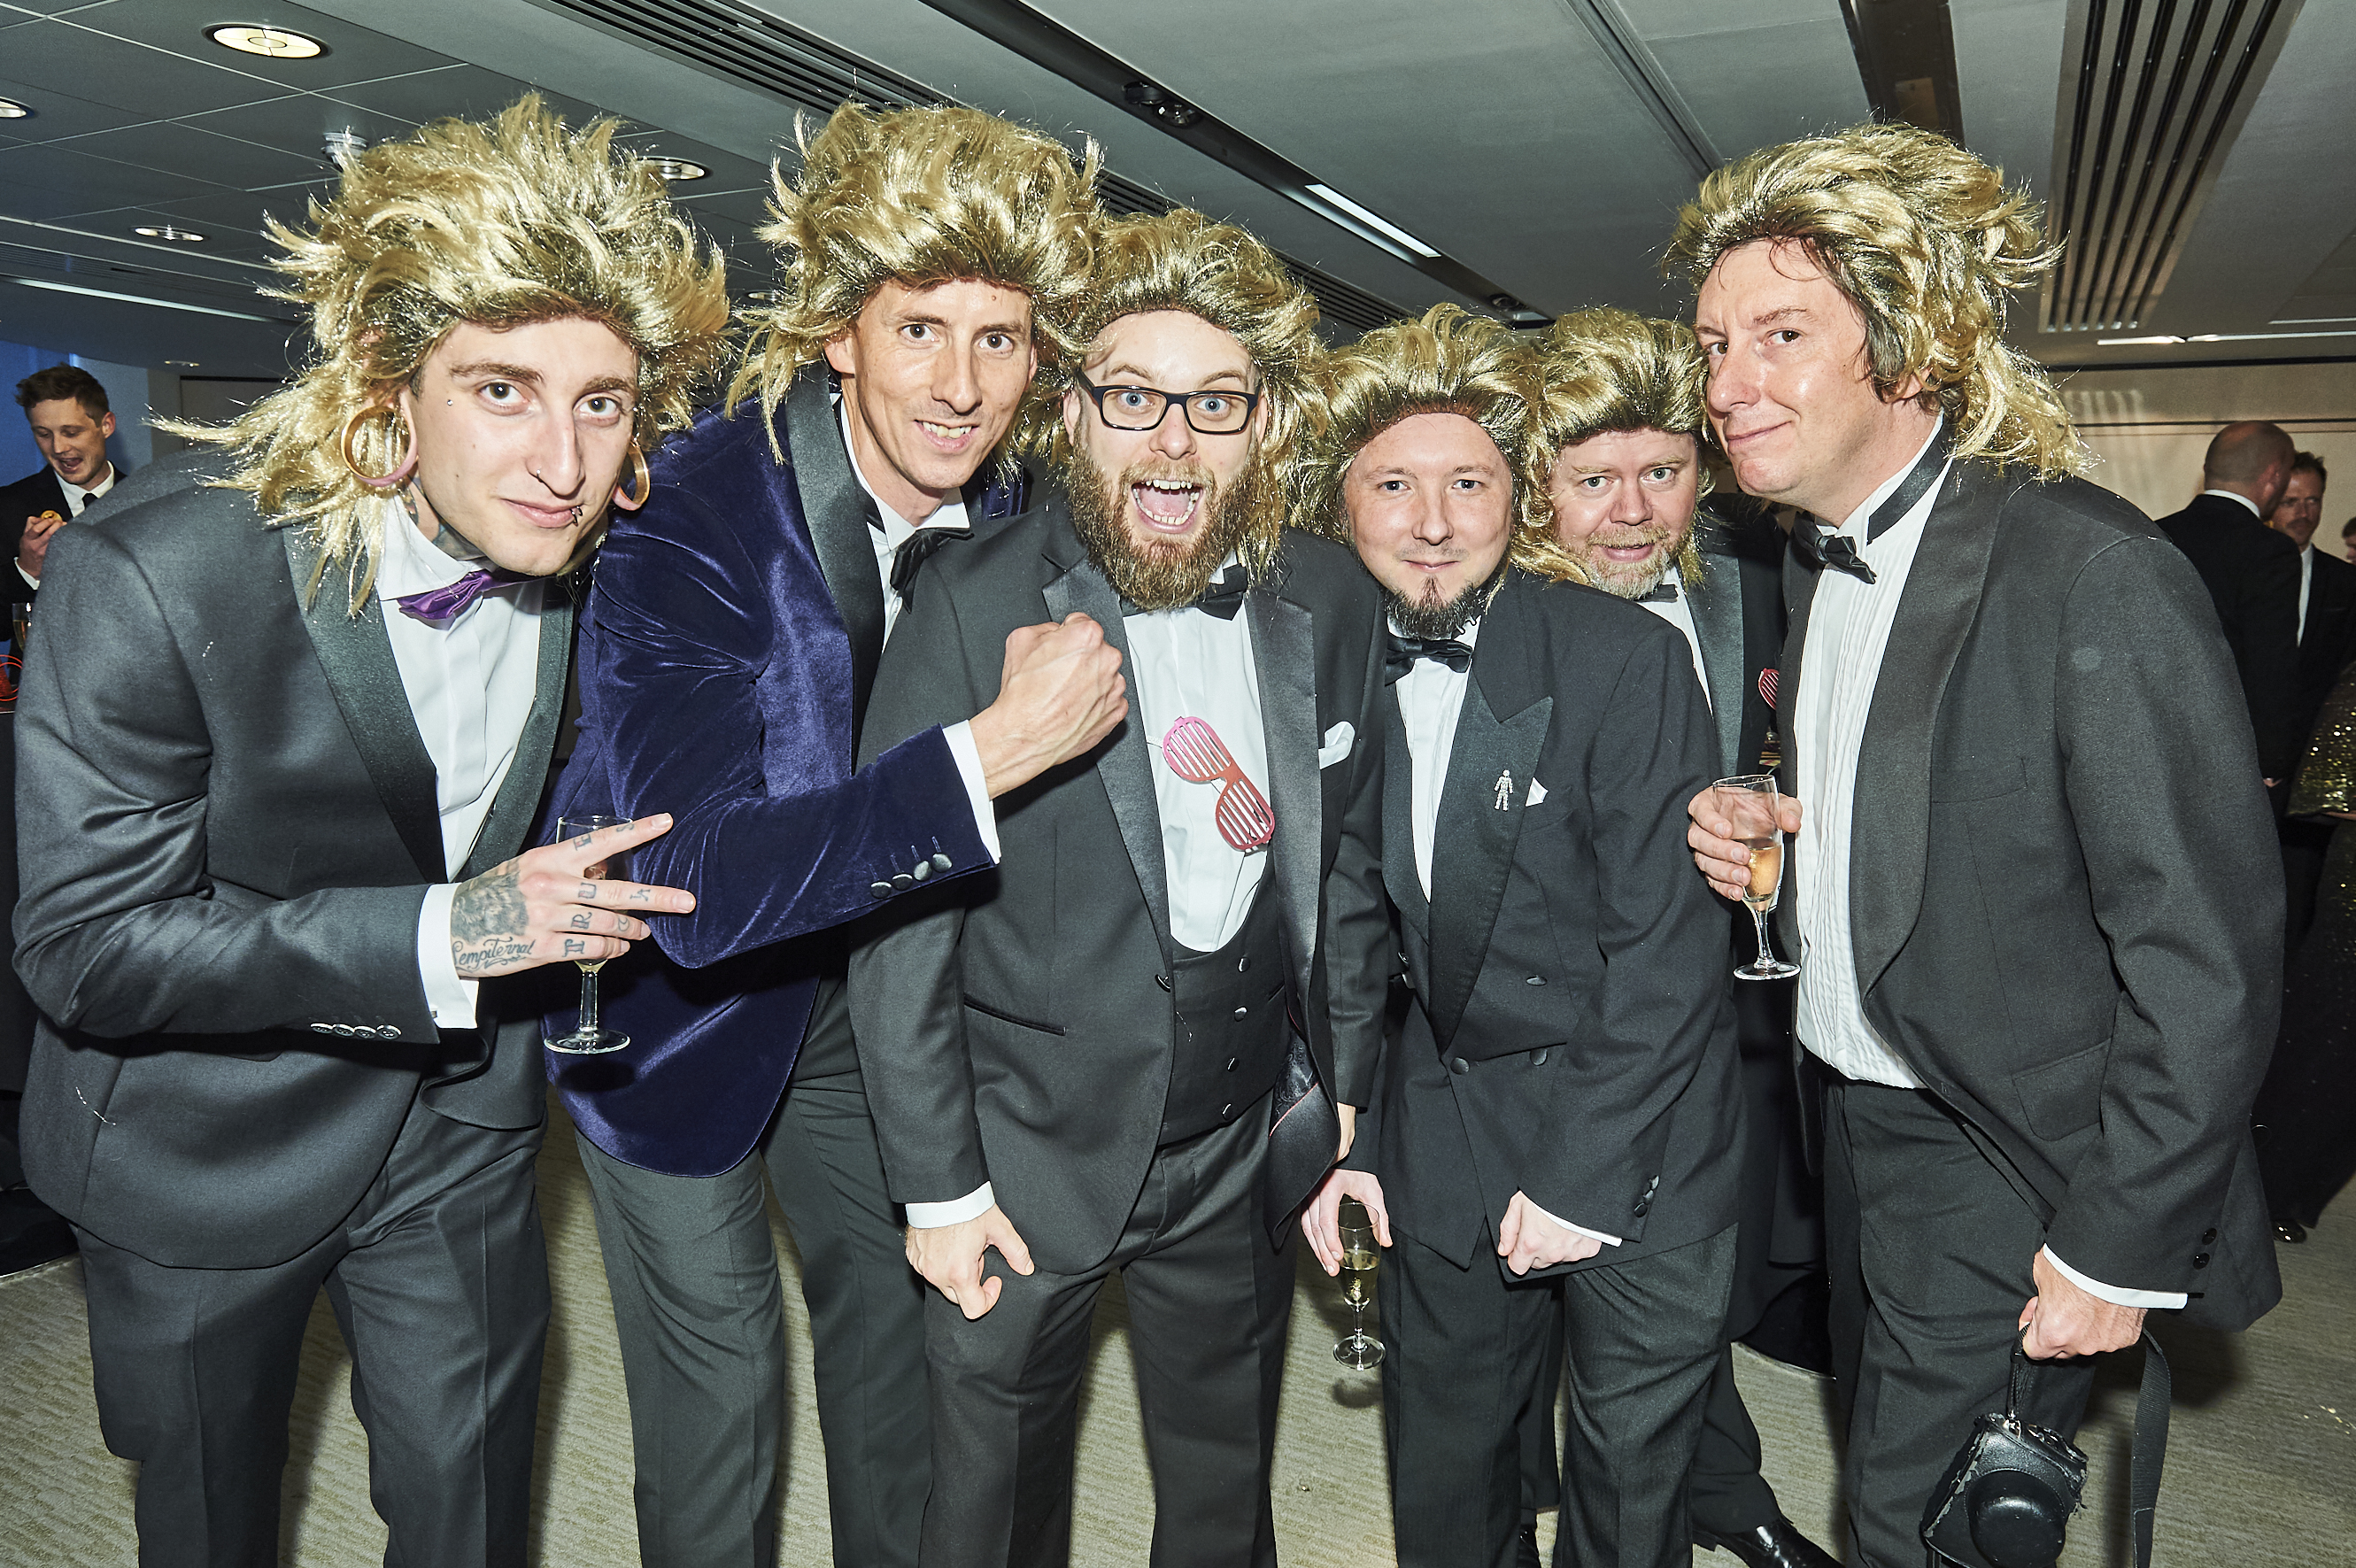 Above: Some of the Five Dollar Shake chaps with 80s barnets at the Windles' pre-reception bash.